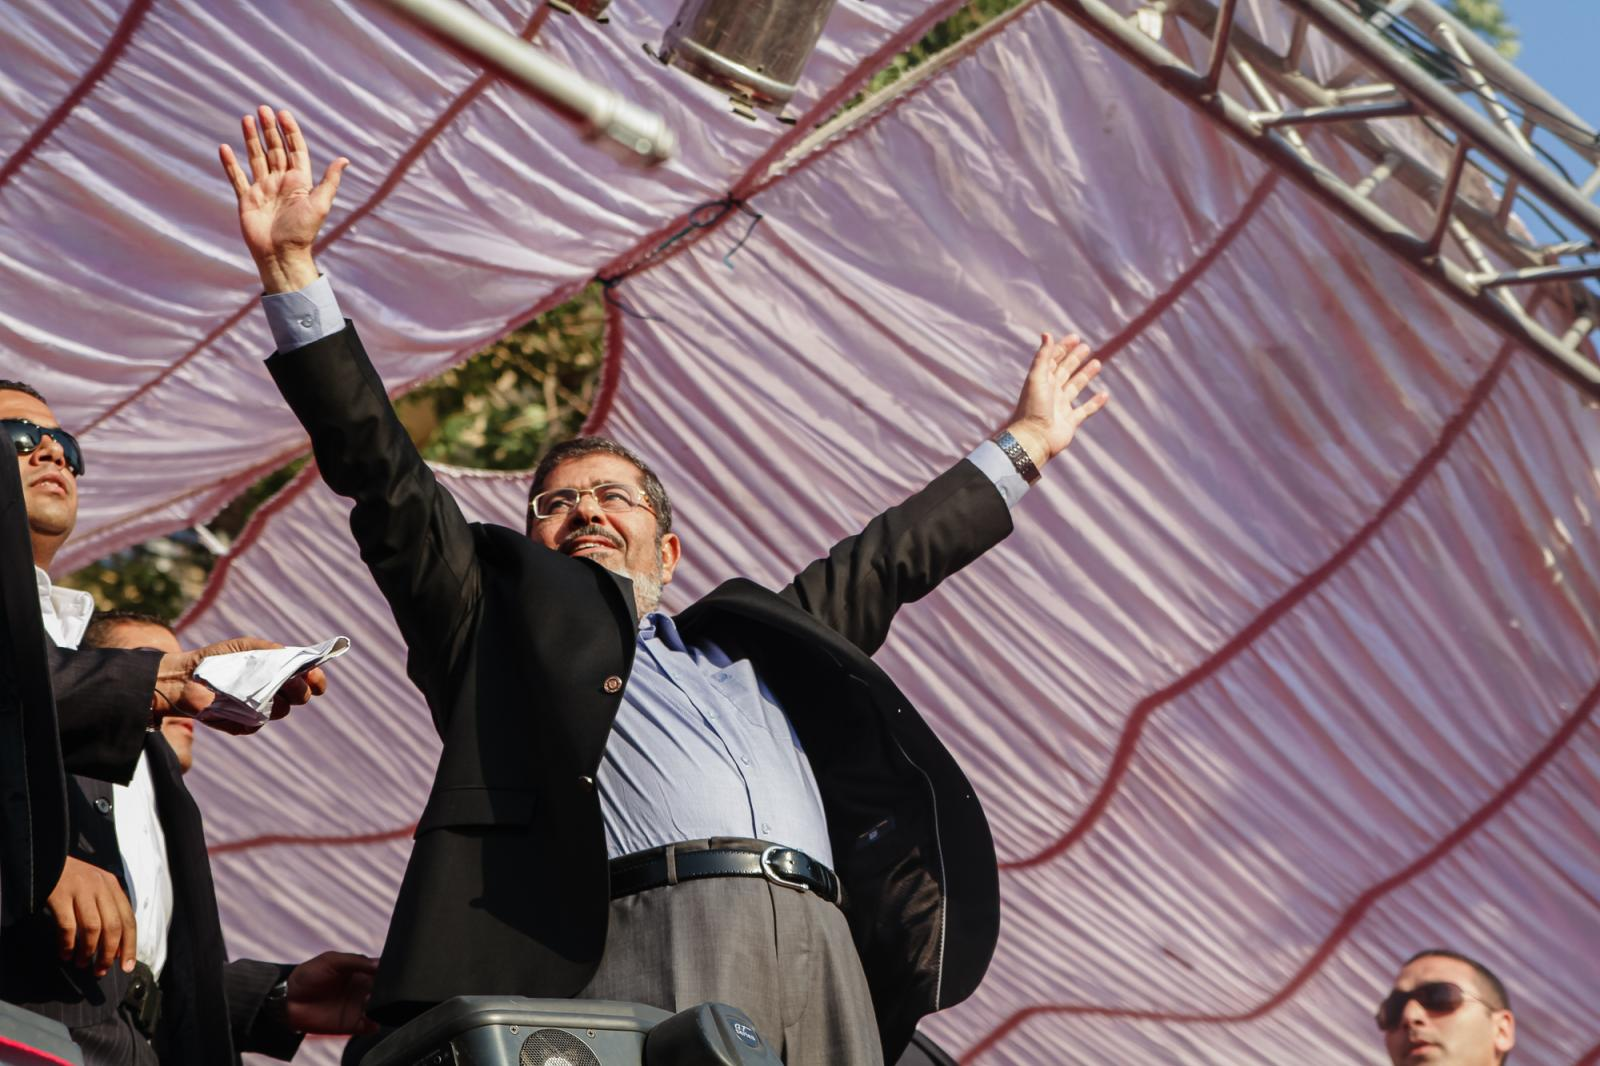 Mohamed Morsi gives his first speech as newly elected president at Cairo's Tahrir Square in Egypt on June 29, 2012.